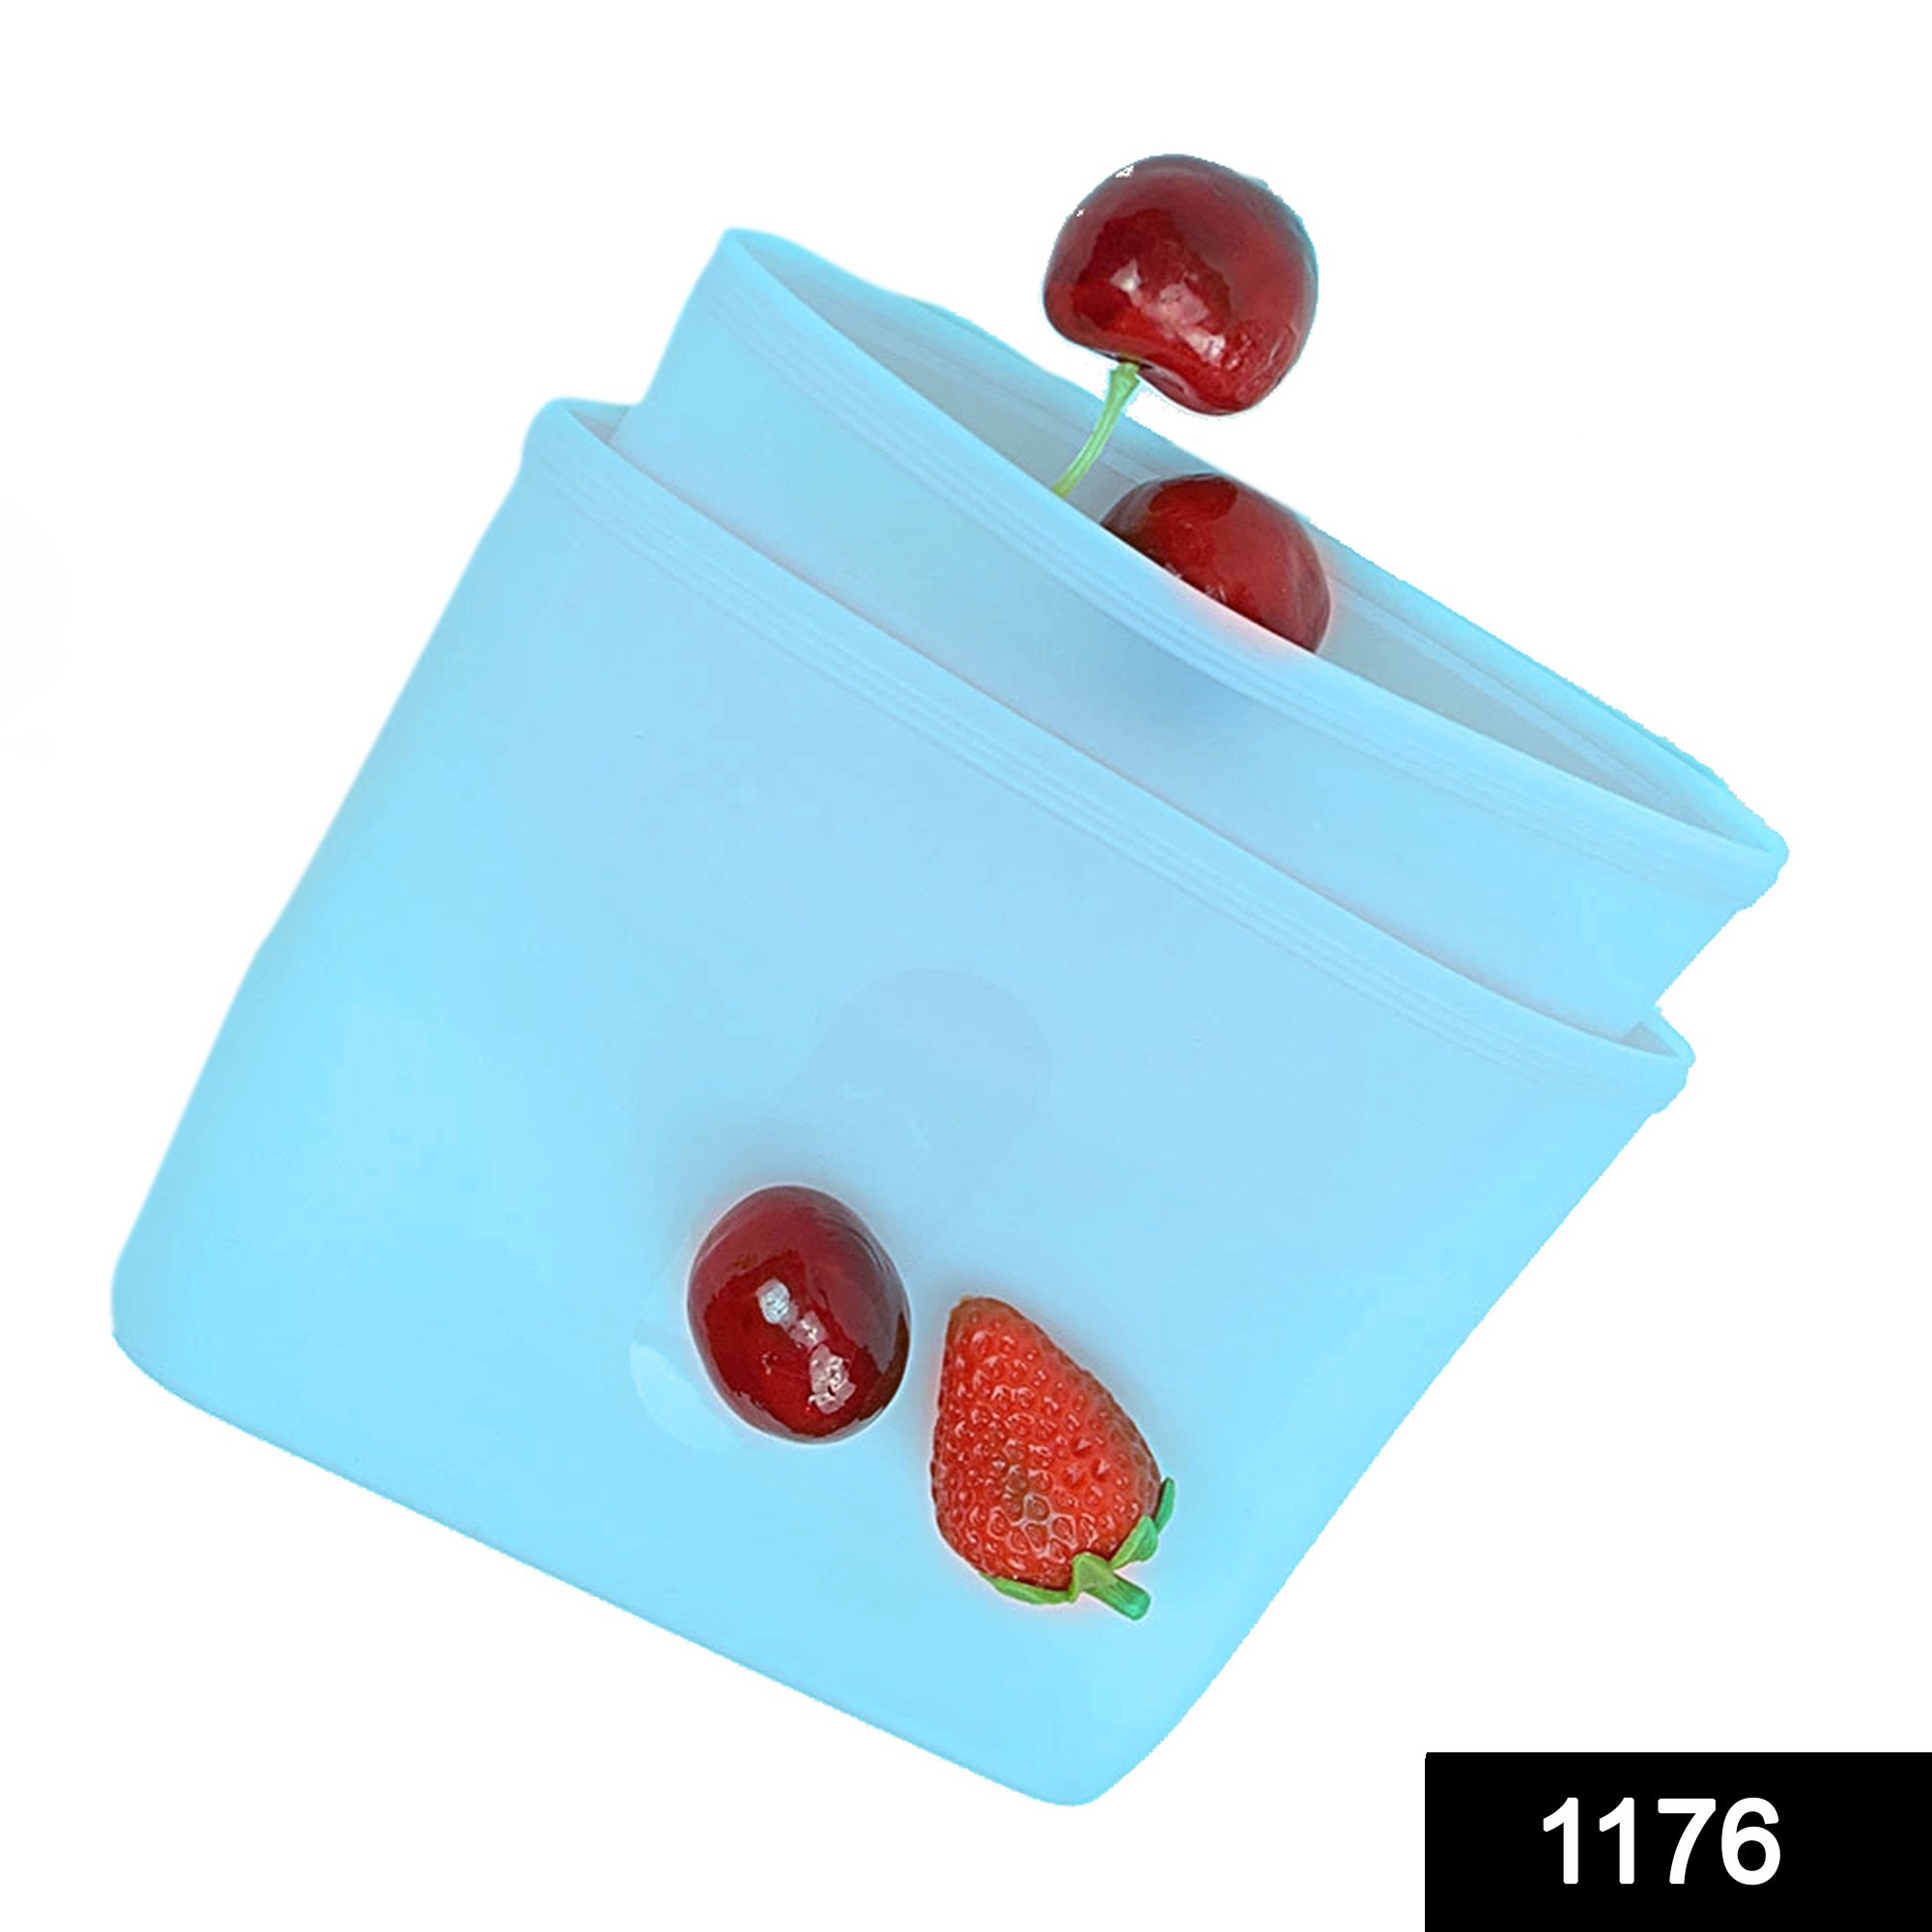 1176 Reusable Airtight Seal Storage Freezer Leak-Proof Silicone Food Bag (Pack of 2) (350ml & 750ml) -